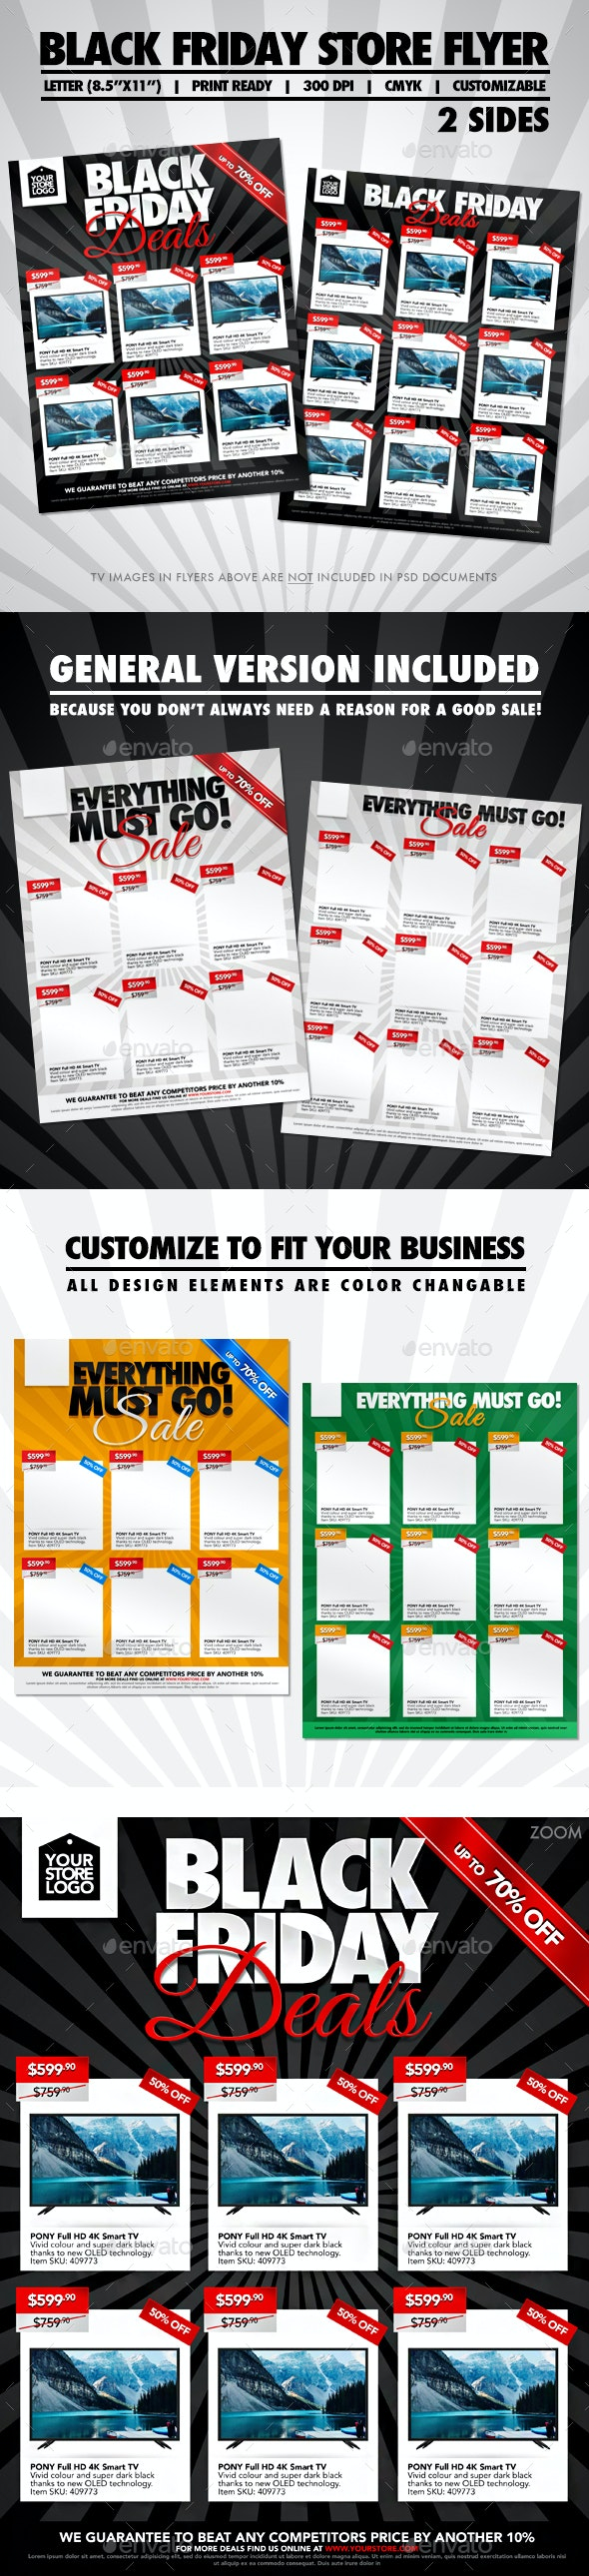 Black Friday Two Sided Store Flyer - Commerce Flyers